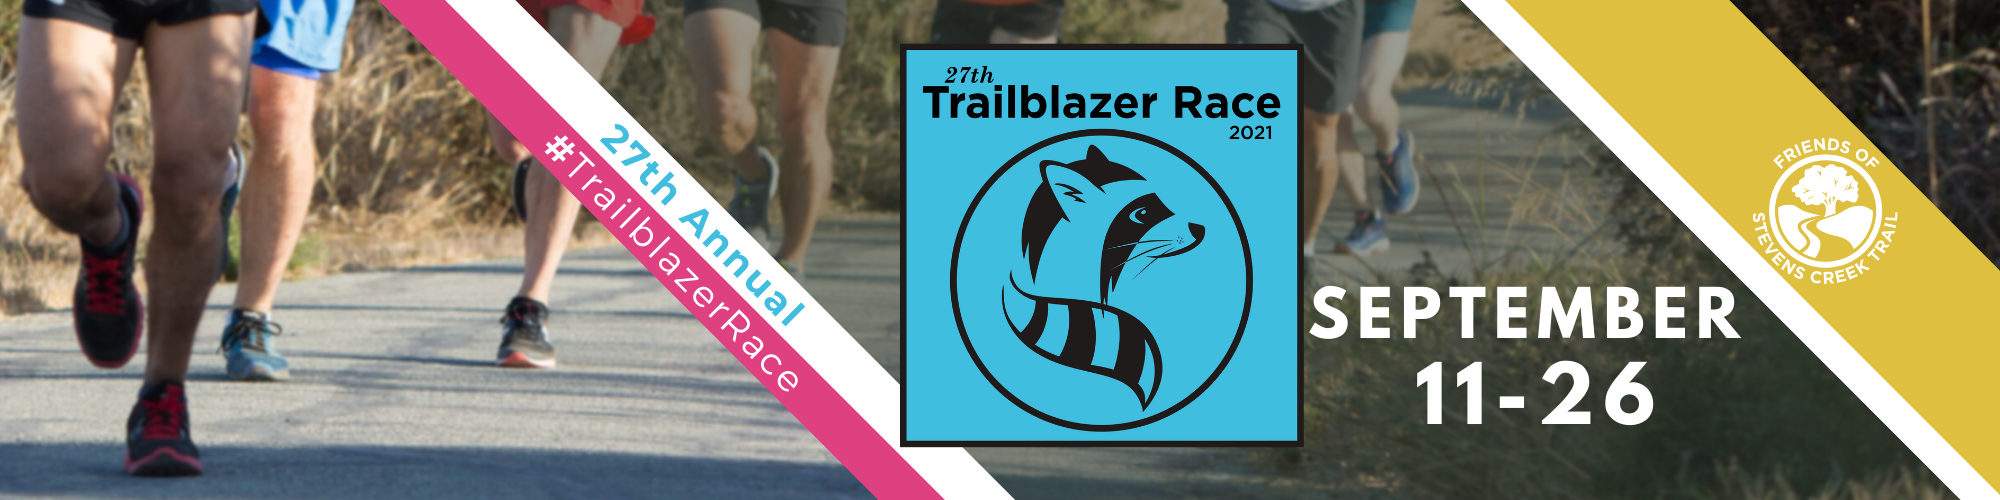 Trailblazer race 2021 banner. Runners' legs on the Stevens Creek Trail feature in the background.